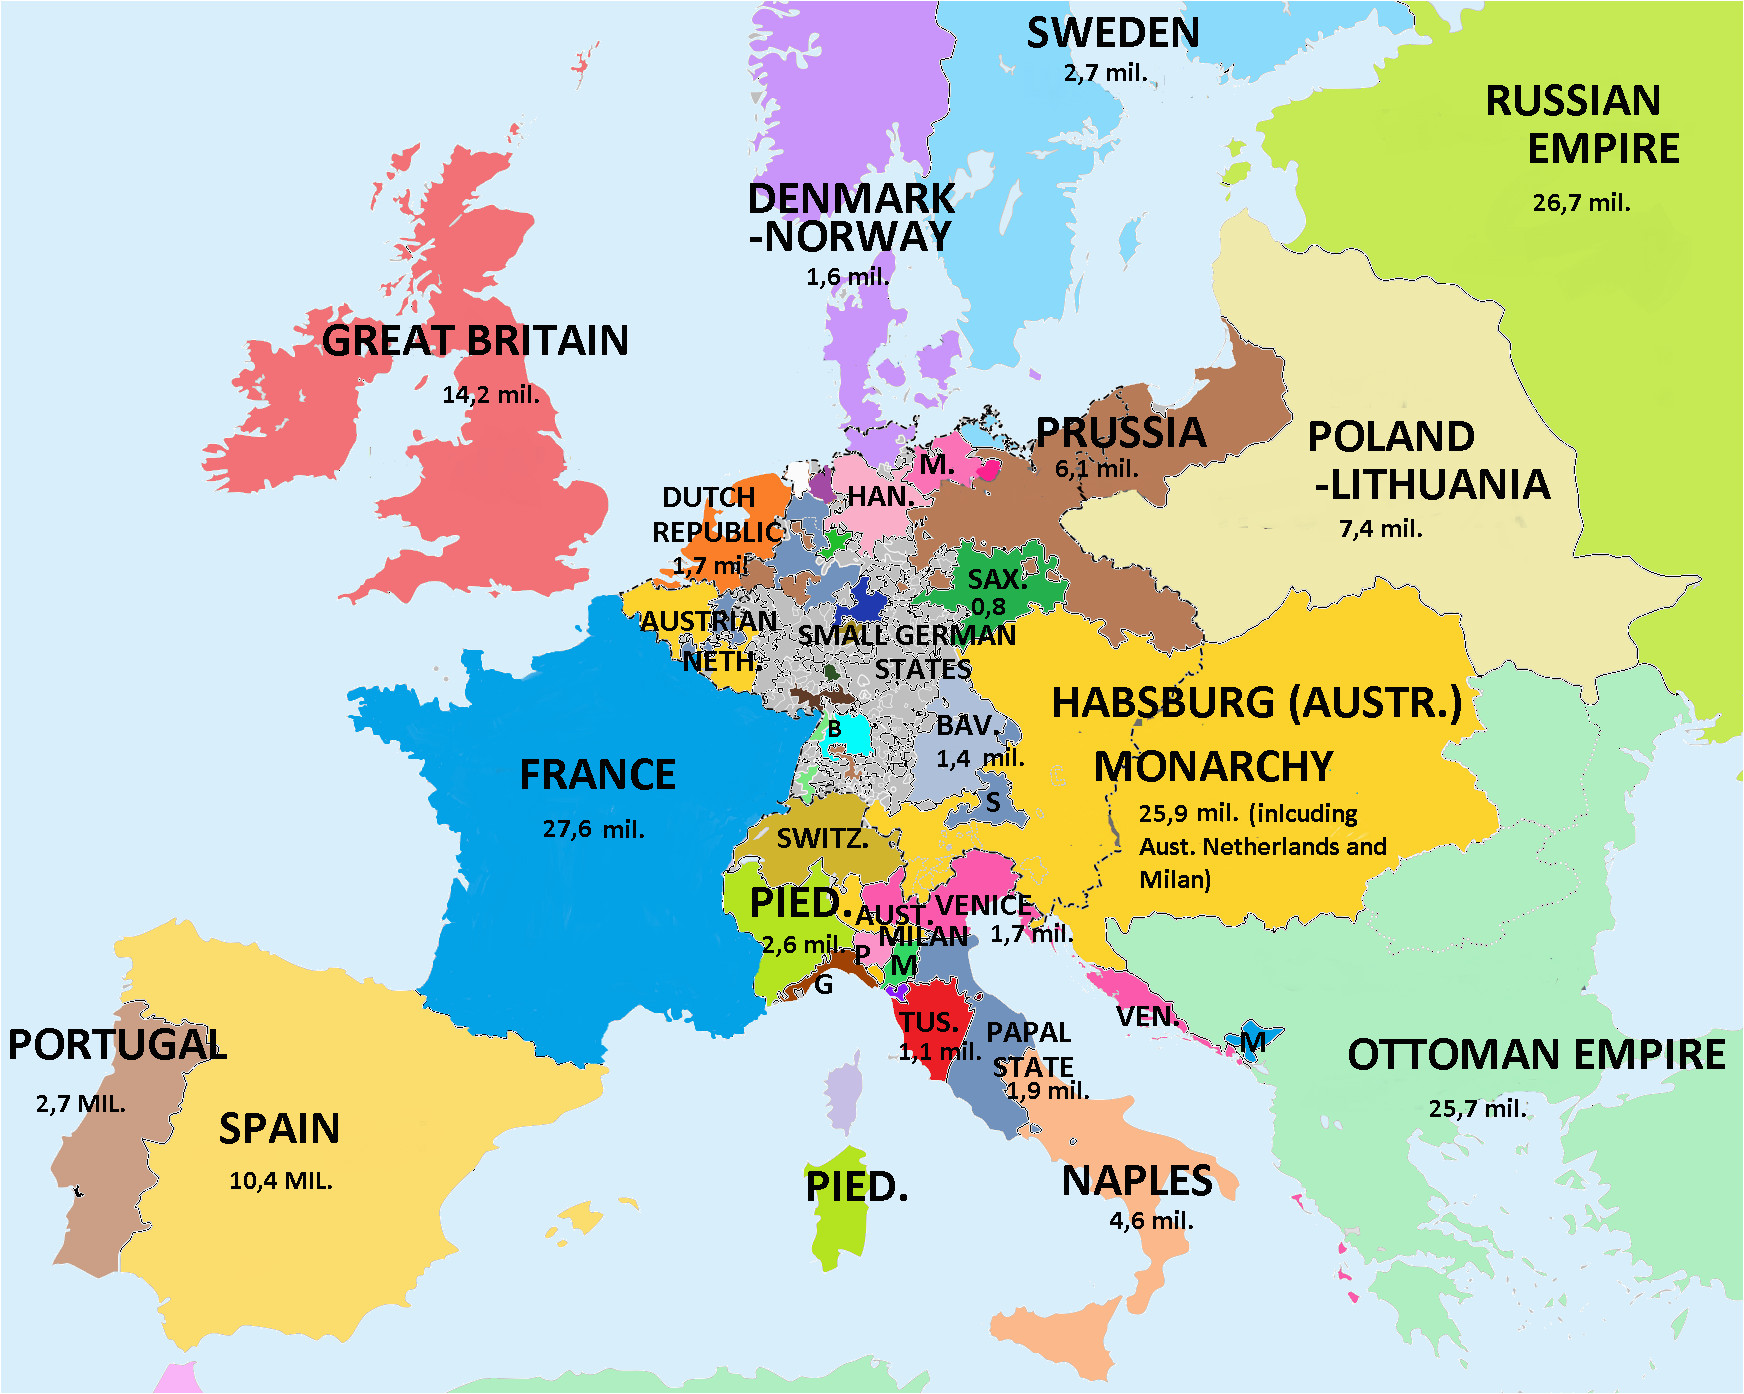 map showing population of european countries 1789 on the eve